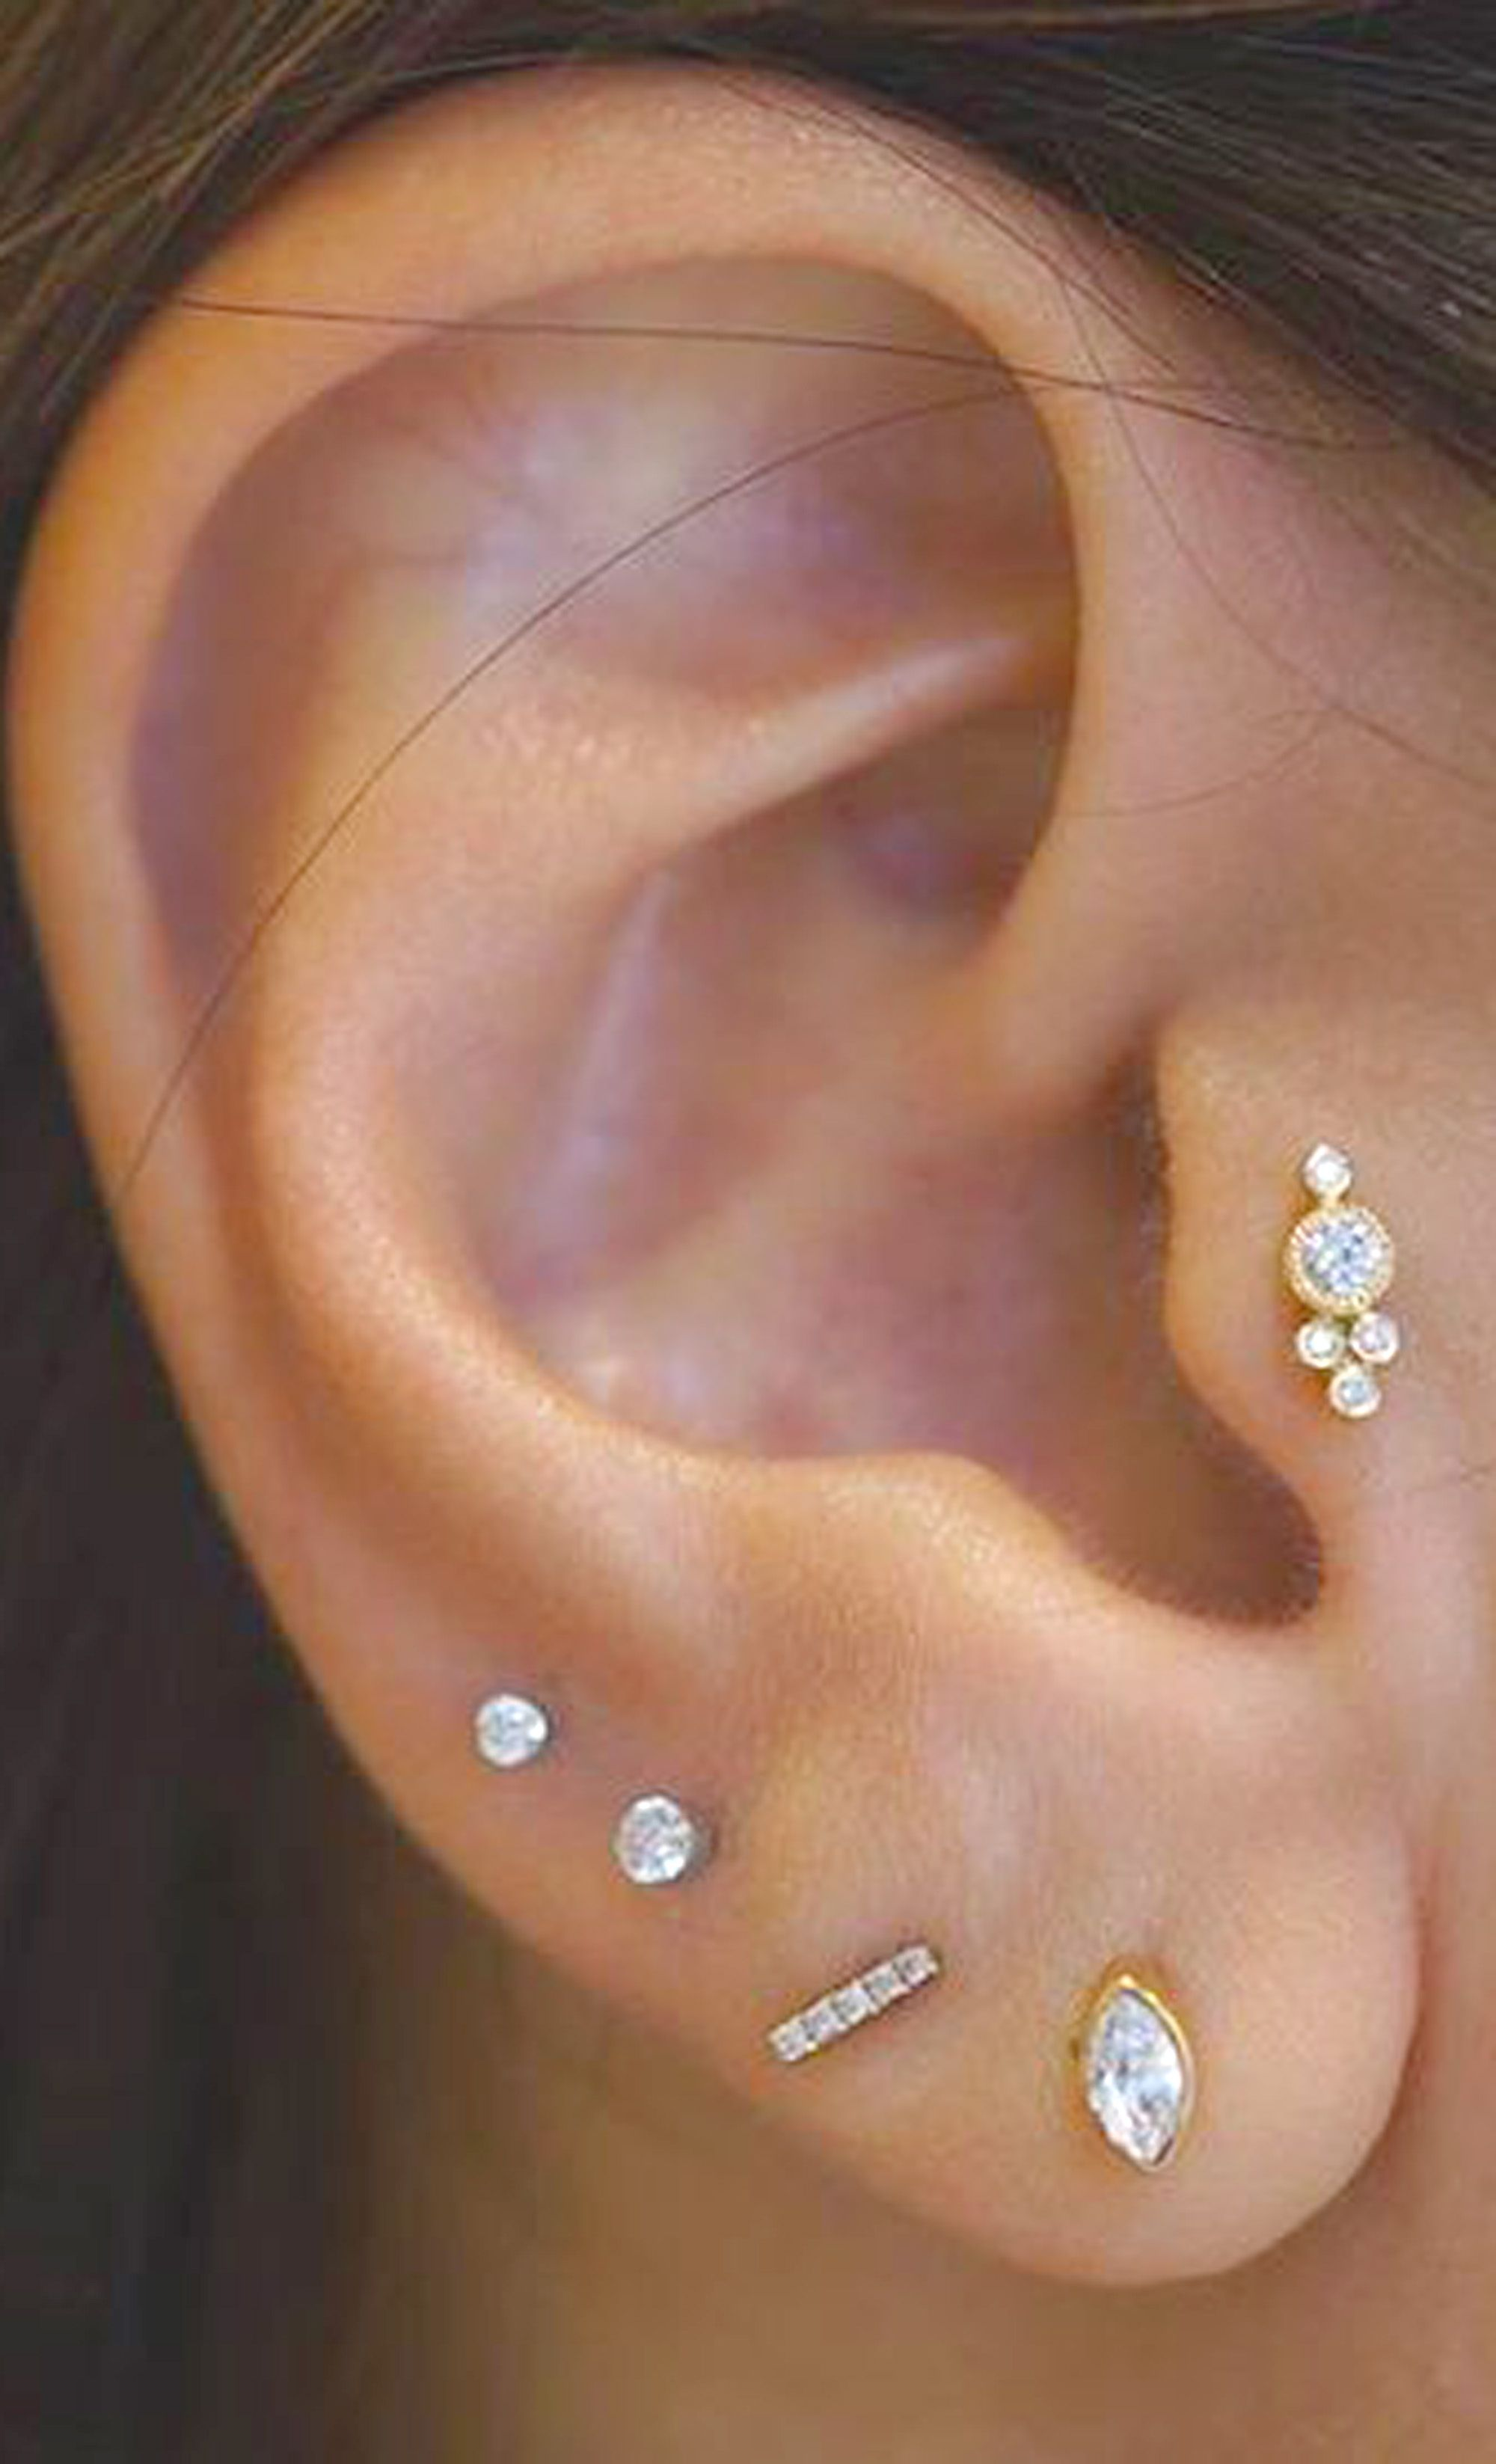 Cute Ear Piercing Ideas For Women Tragus Earring Stud Jewolite